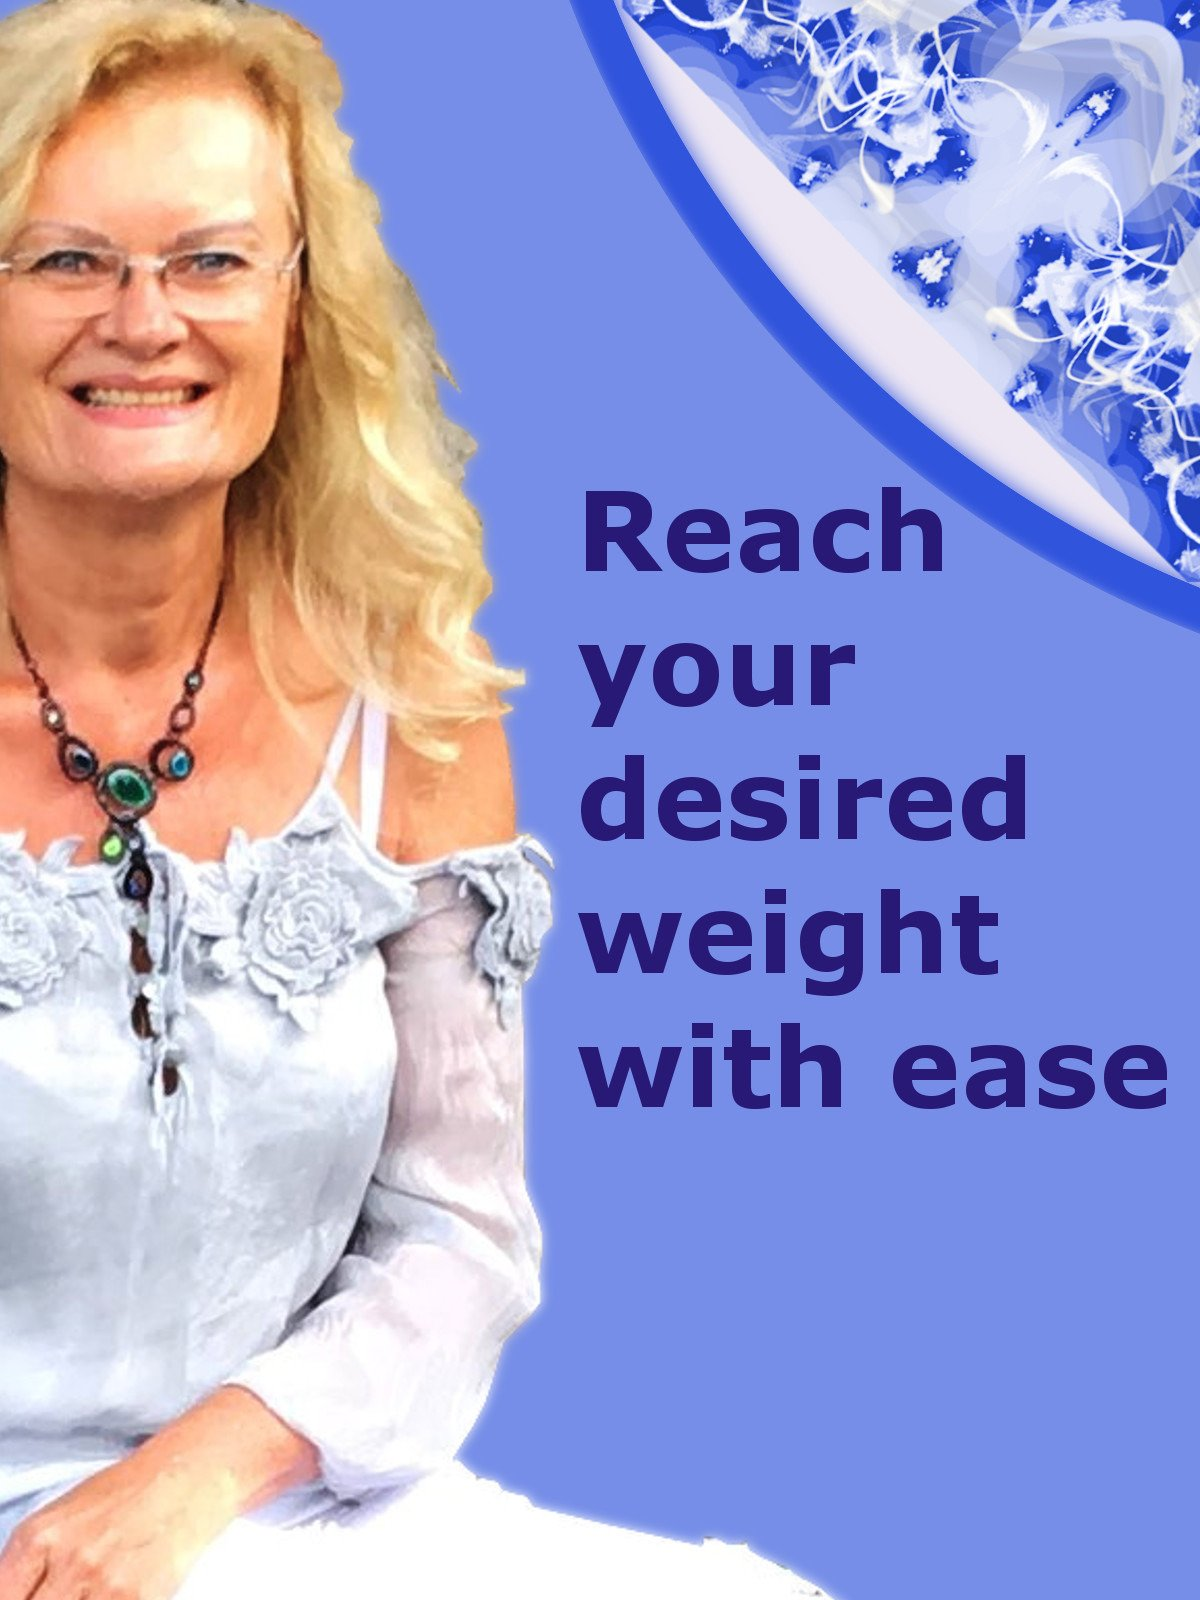 Reach your desired weight with ease